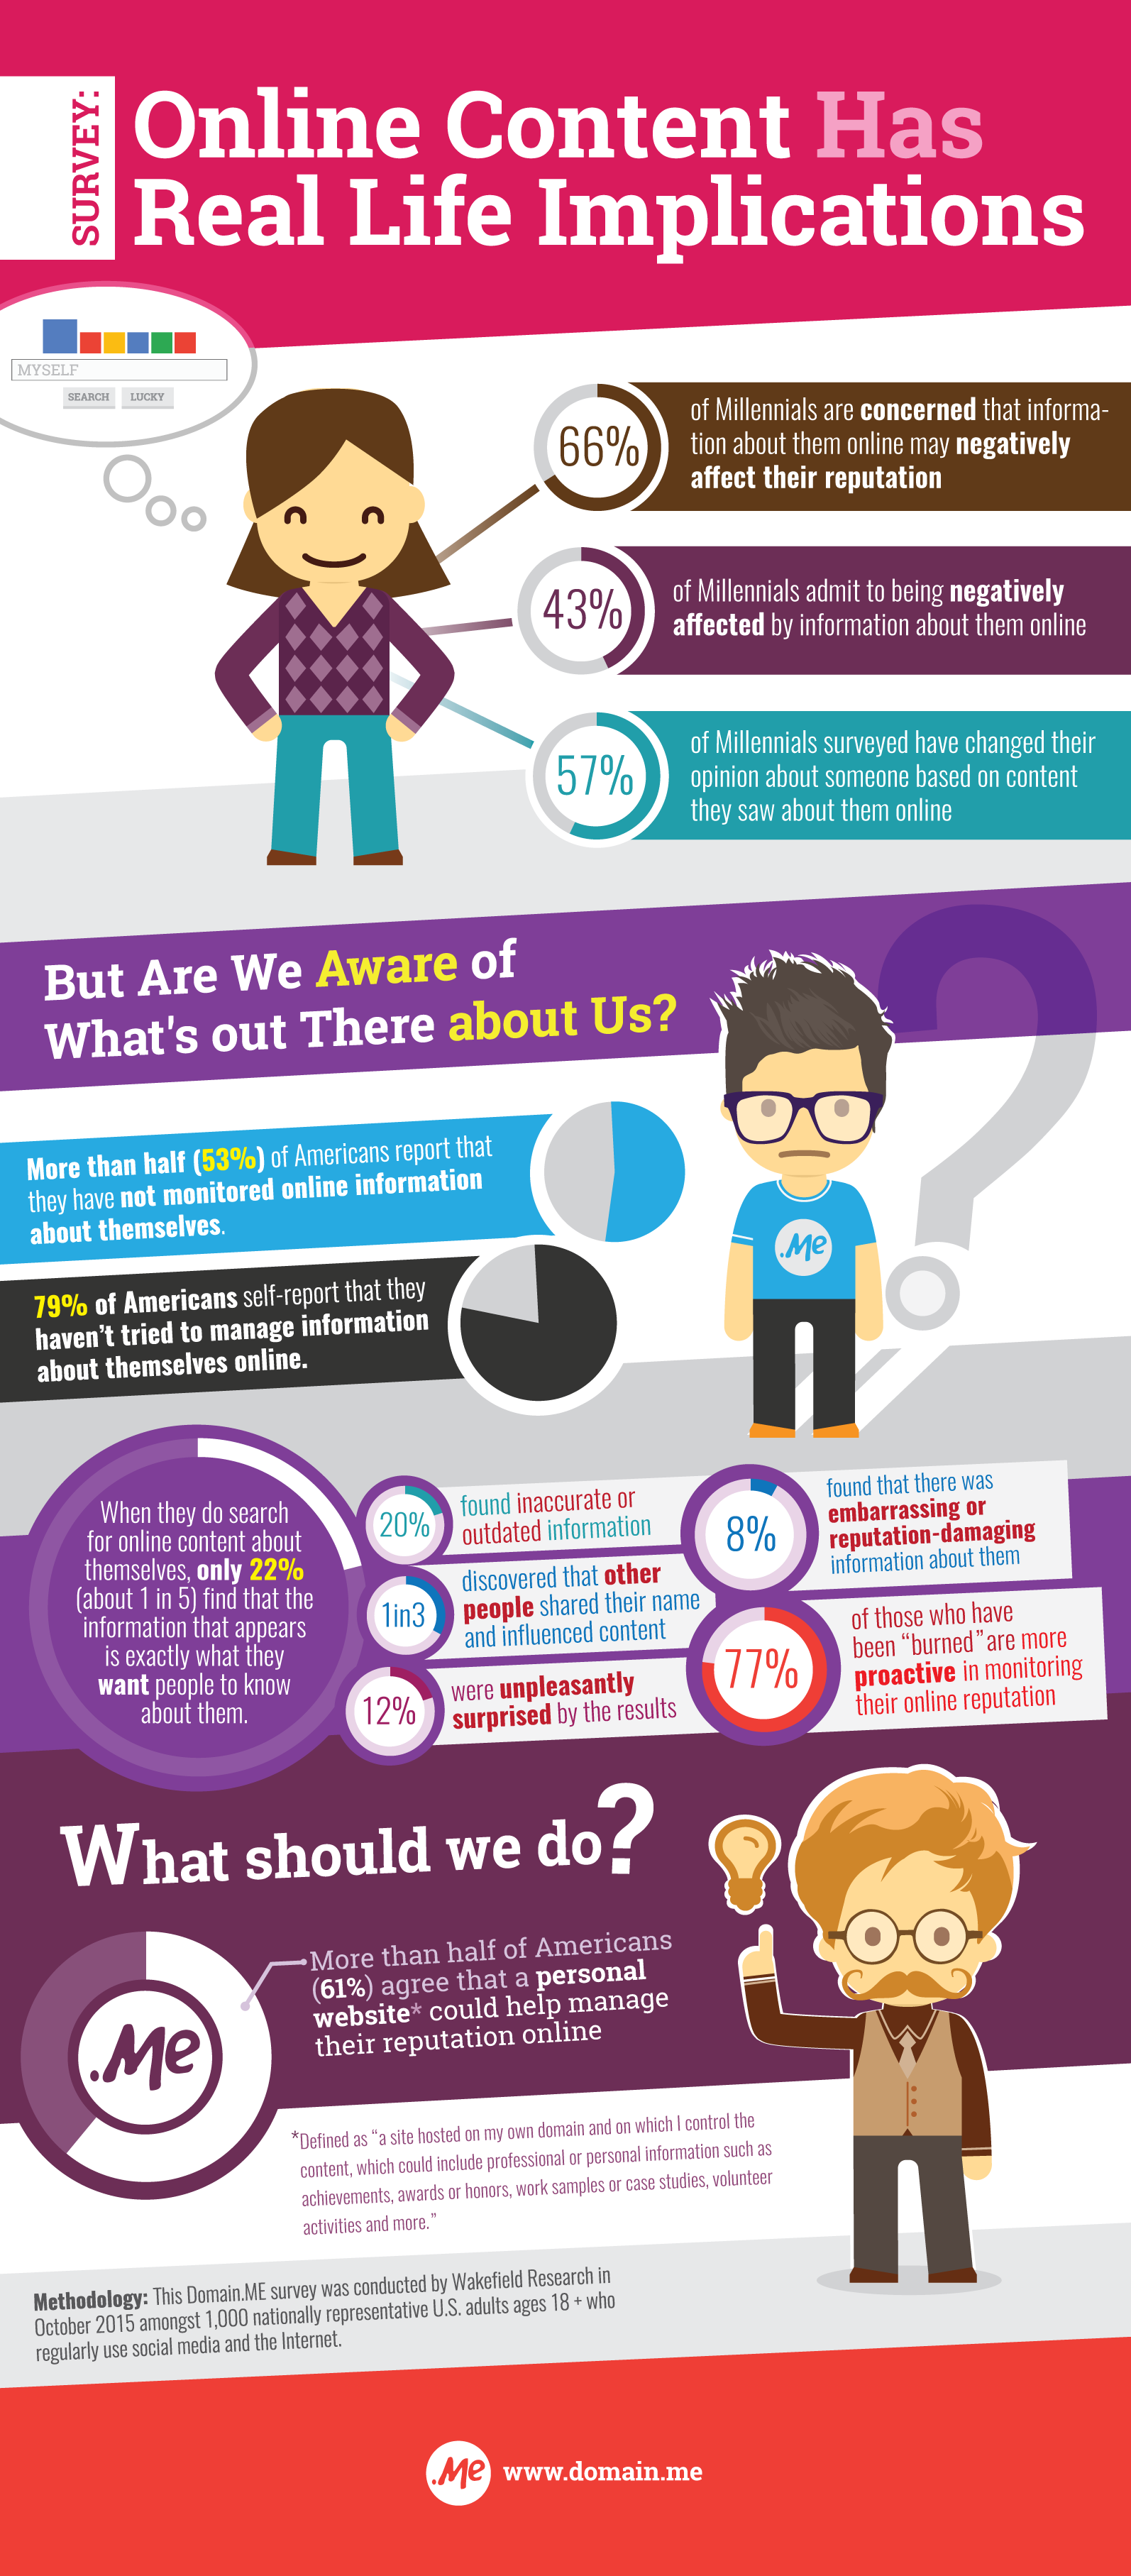 [INFOGRAPHIC] Online Content Has Real Life Implications